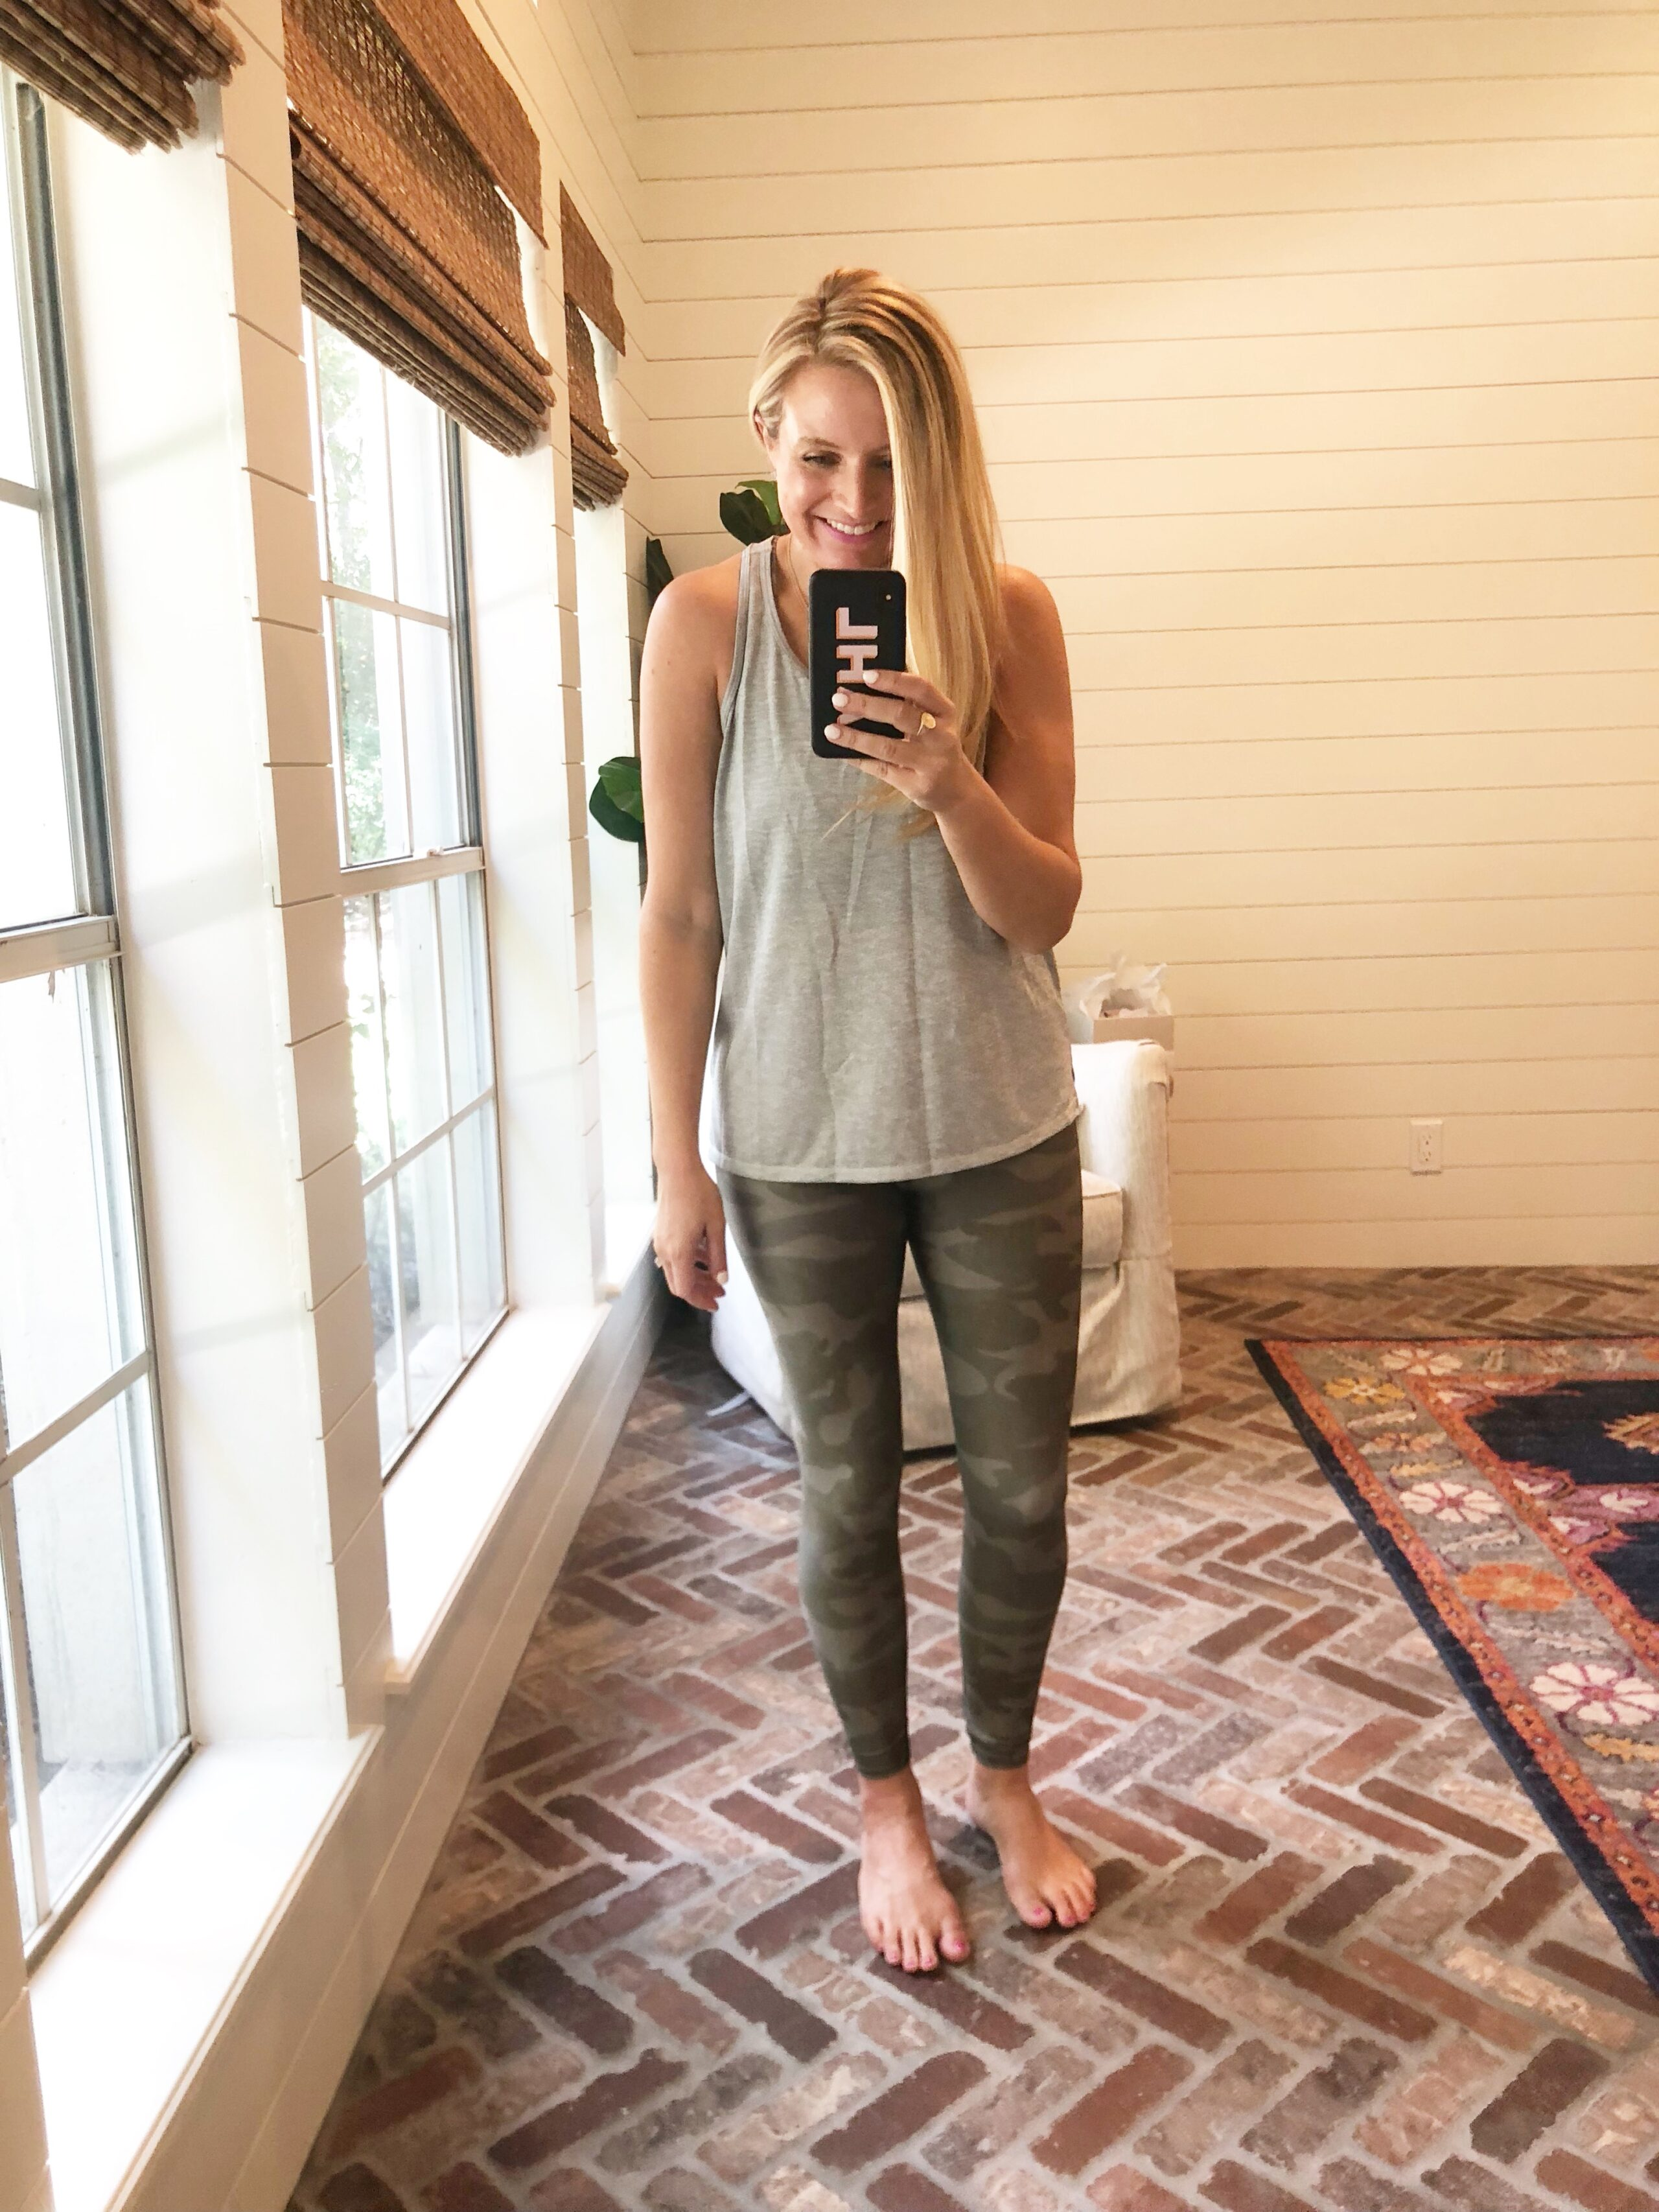 BBG results featured by popular Houston life and style blogger, Fancy Ashley